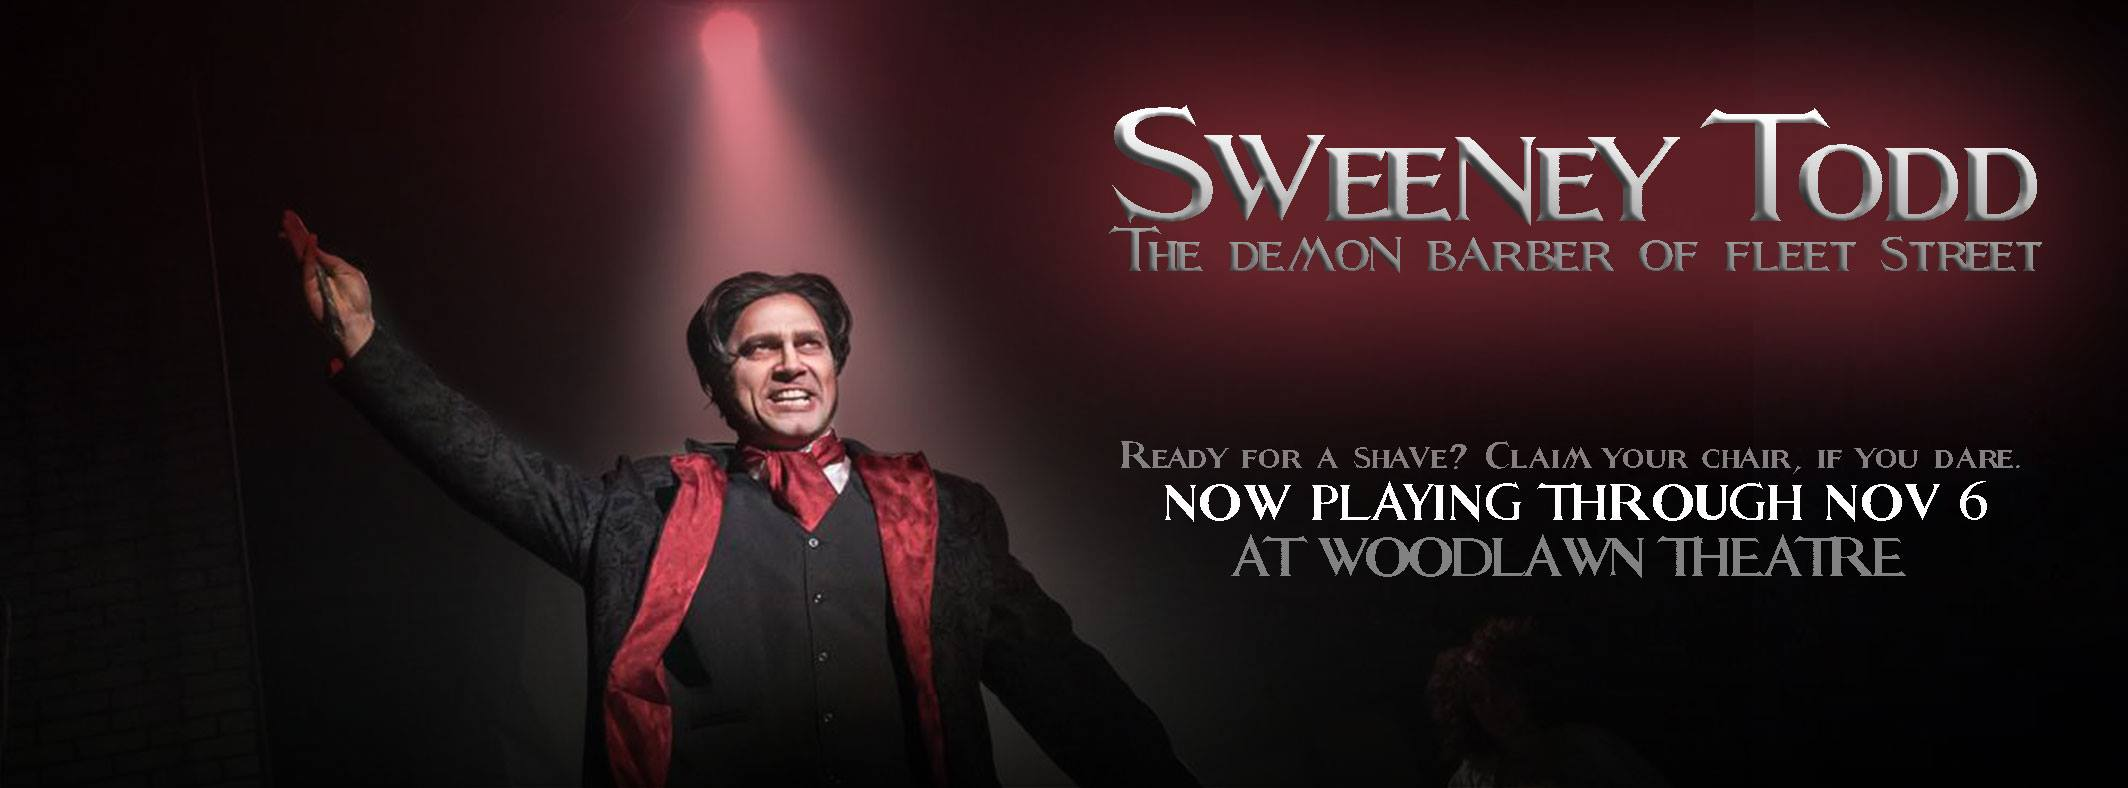 Sweeney Todd by Woodlawn Theatre